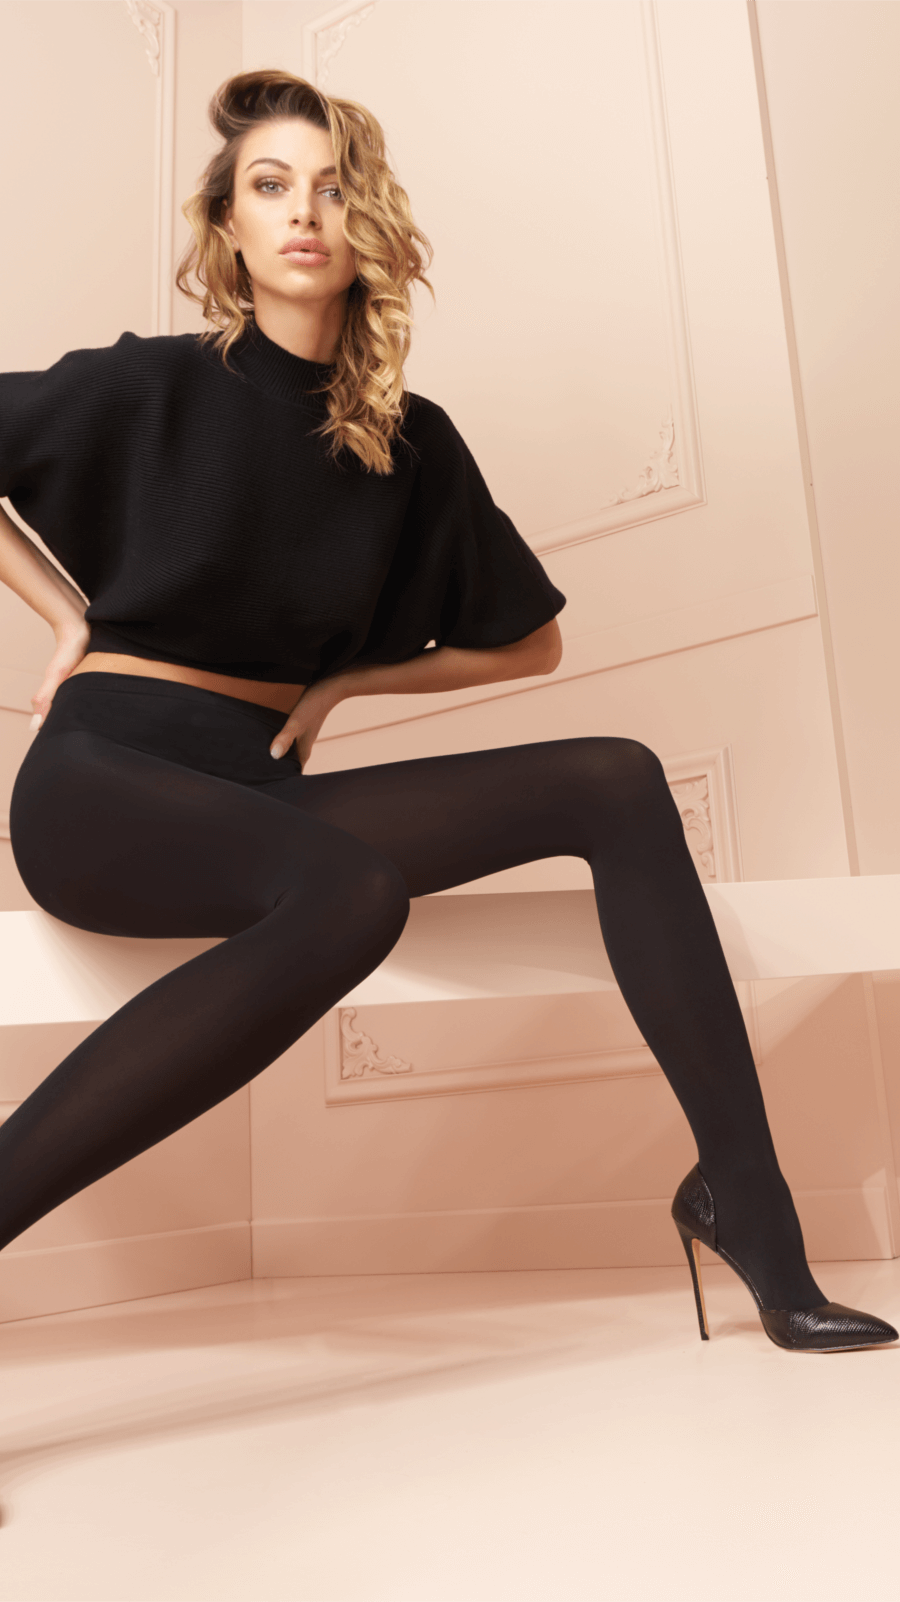 You will be sure to find tights, fishnets and hosiery in the perfect selection of colors to match any outfit or occasion. We Love Colors also offers Leotards, Unitards and other Dancewear in impossible to find colors!From Kids Tights to Plus Size Tights and even Patterned Tights, We Love Colors has it all!